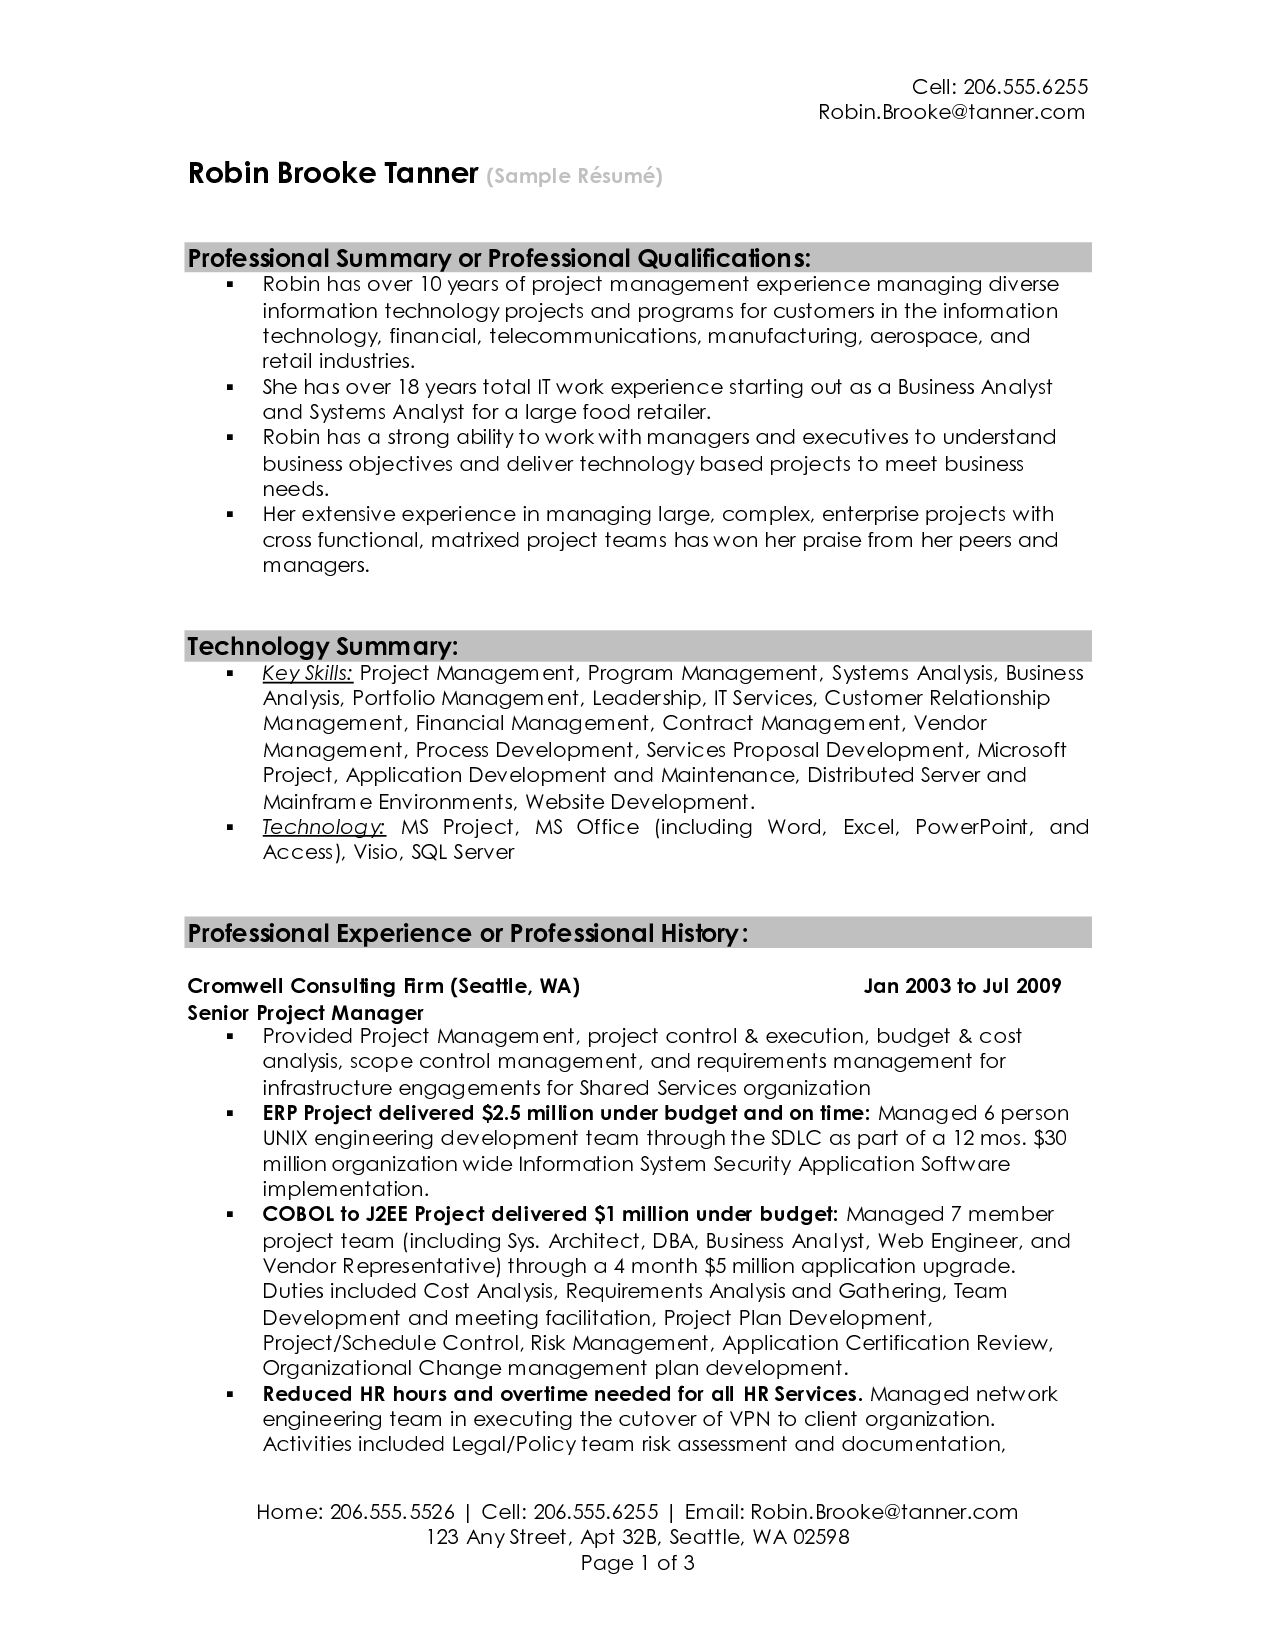 Professional Summary Resume Examples Professional Resume Summary Examples  77e7fb28f  Summary On A Resume Examples